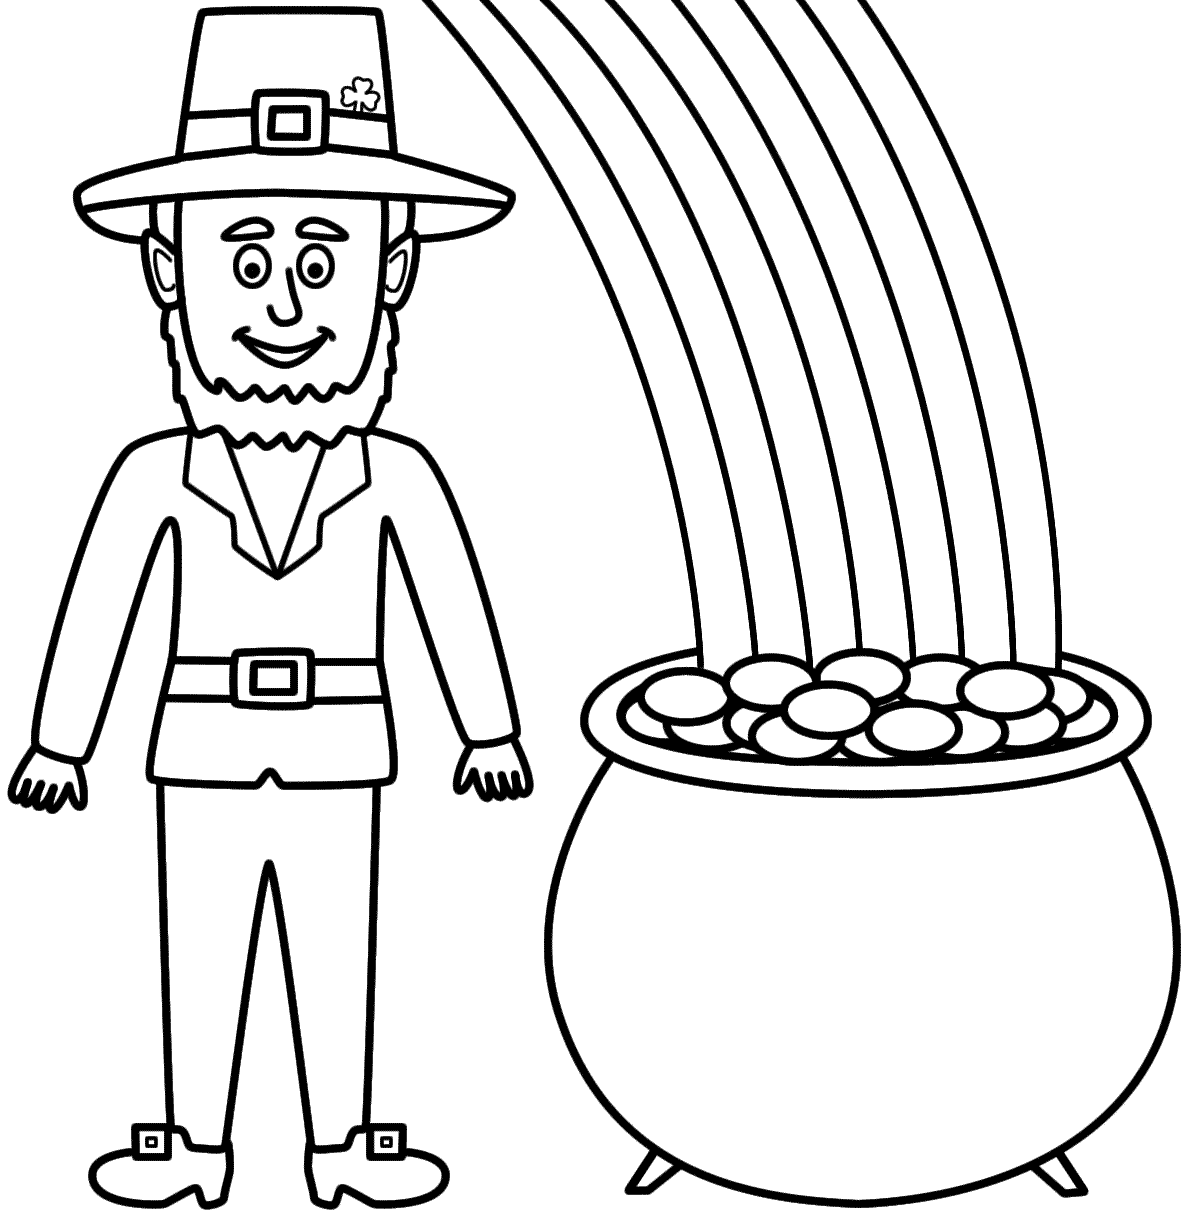 Irish Coloring Pages at GetDrawings.com | Free for personal ...